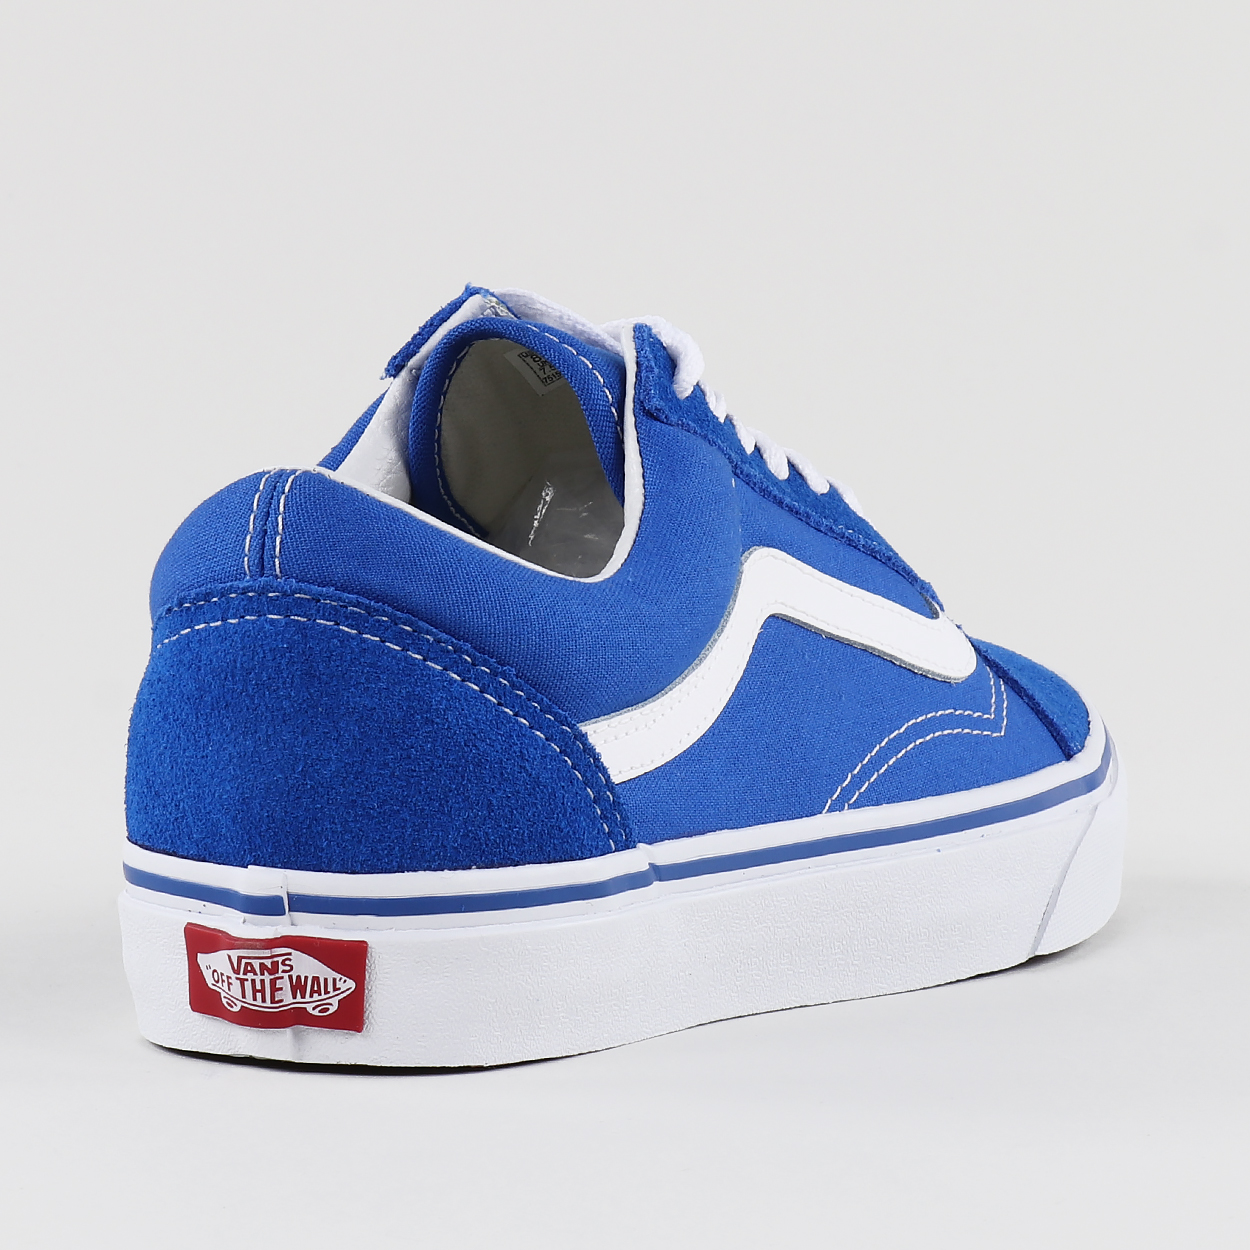 89b65780a0 The classic Vans Old Skool shoe with a blend of suede and canvas in the  upper. Flat laces and inconic stitching meet this simple and timeless  design.